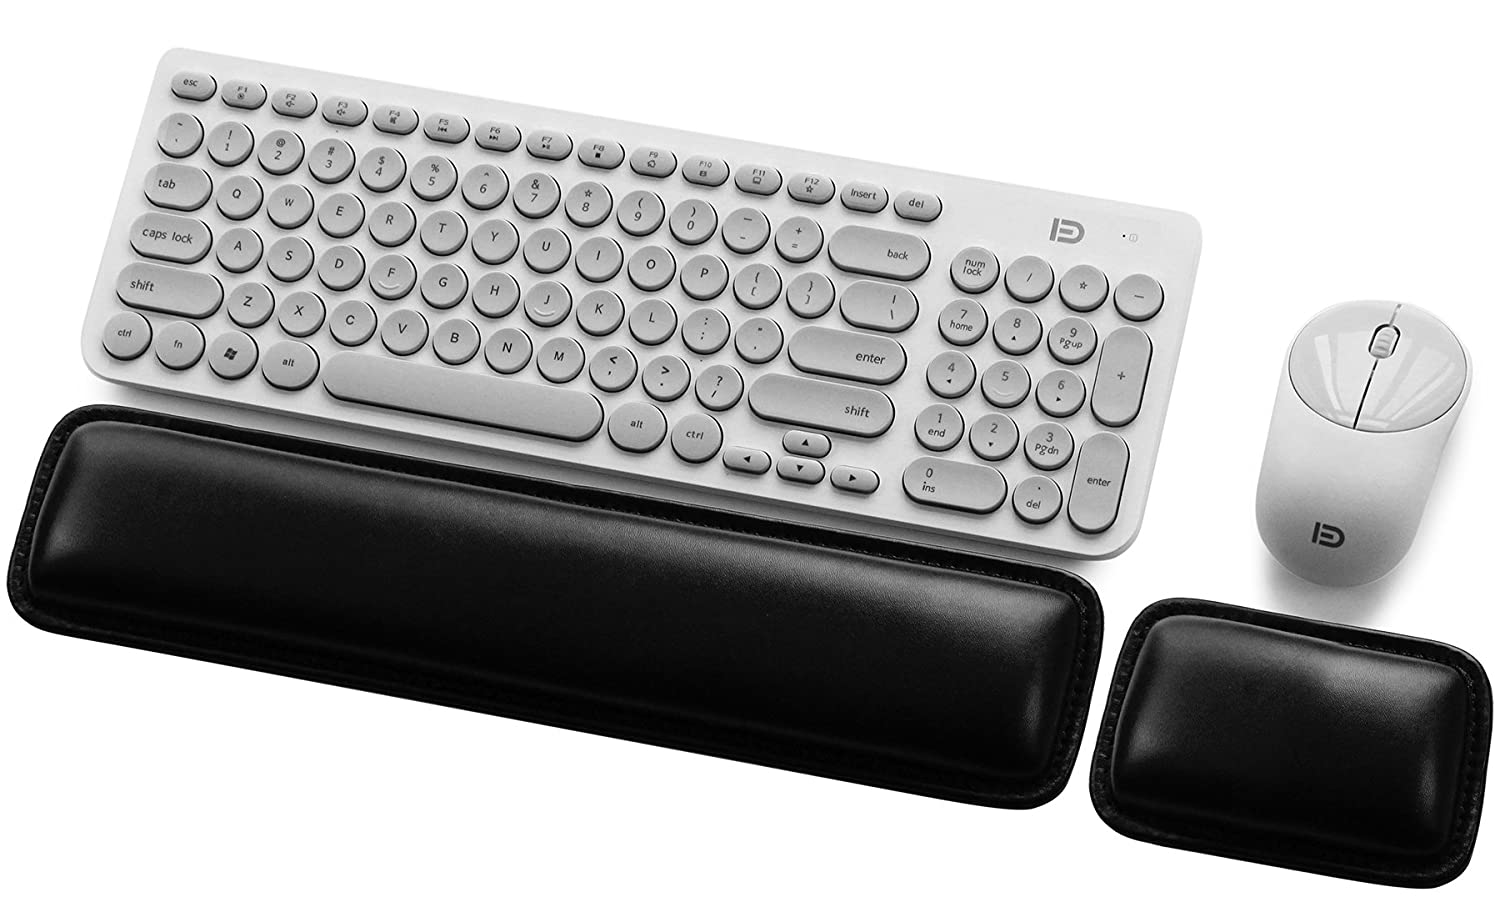 Comfortable /& Lightweight Design for Easy Typing and Pain Relief BOONA Superfine Fiber Widen Memory Foam Set Nonslip Mouse Pad Wrist Support /& Keyboard Wrist Rest Support for Computer /& Laptop